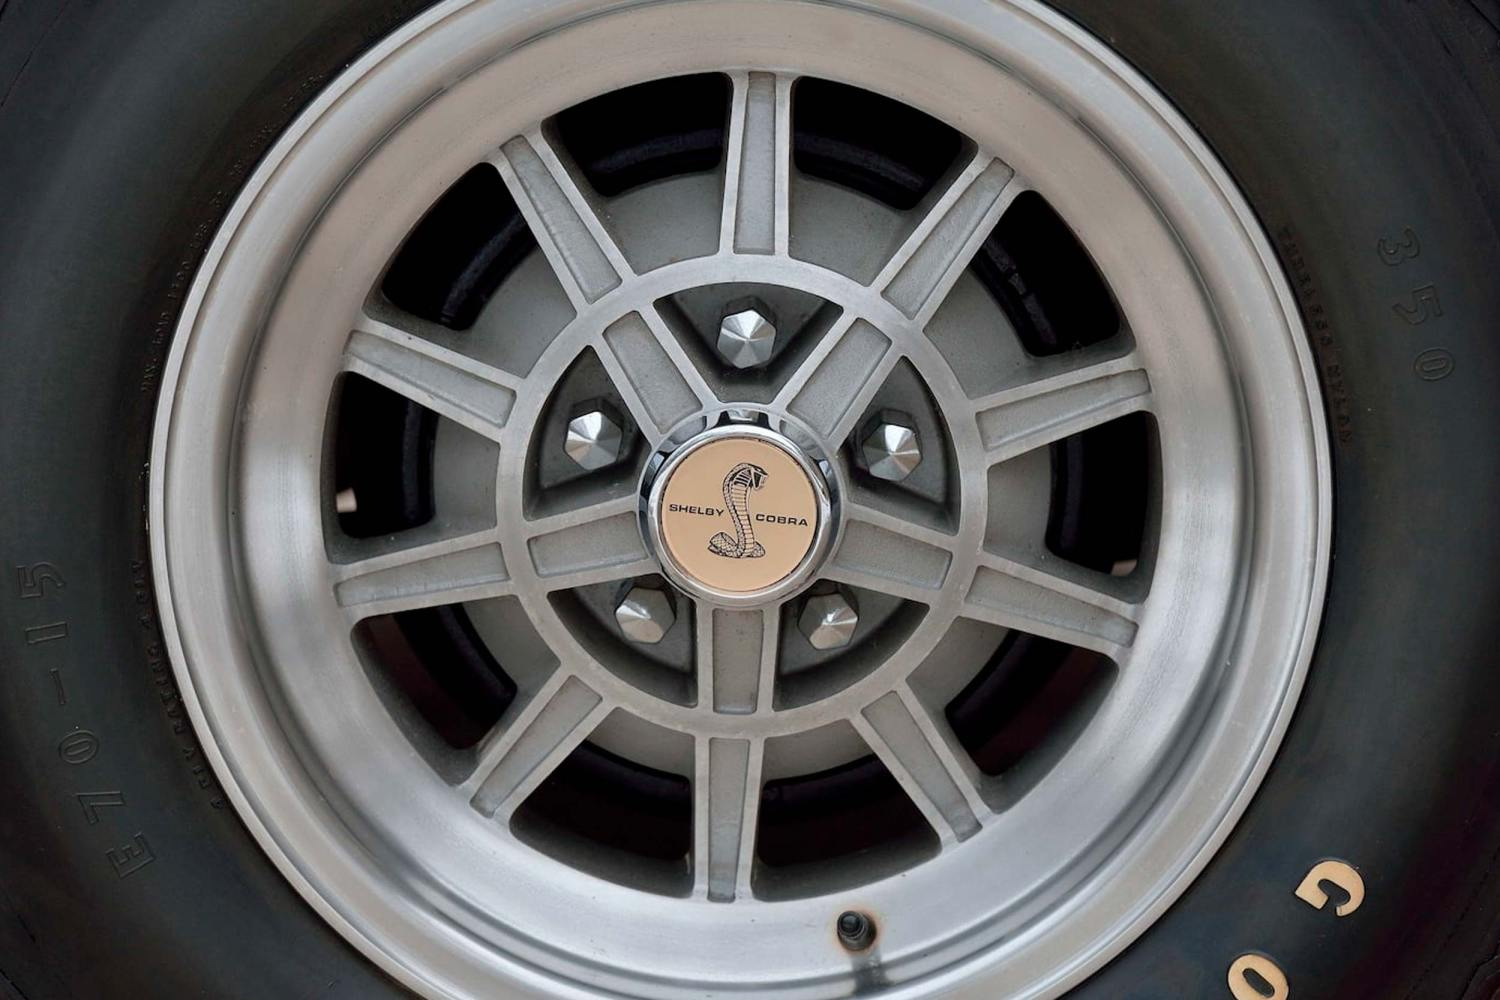 1967 Mustang Shelby GT500 wheels